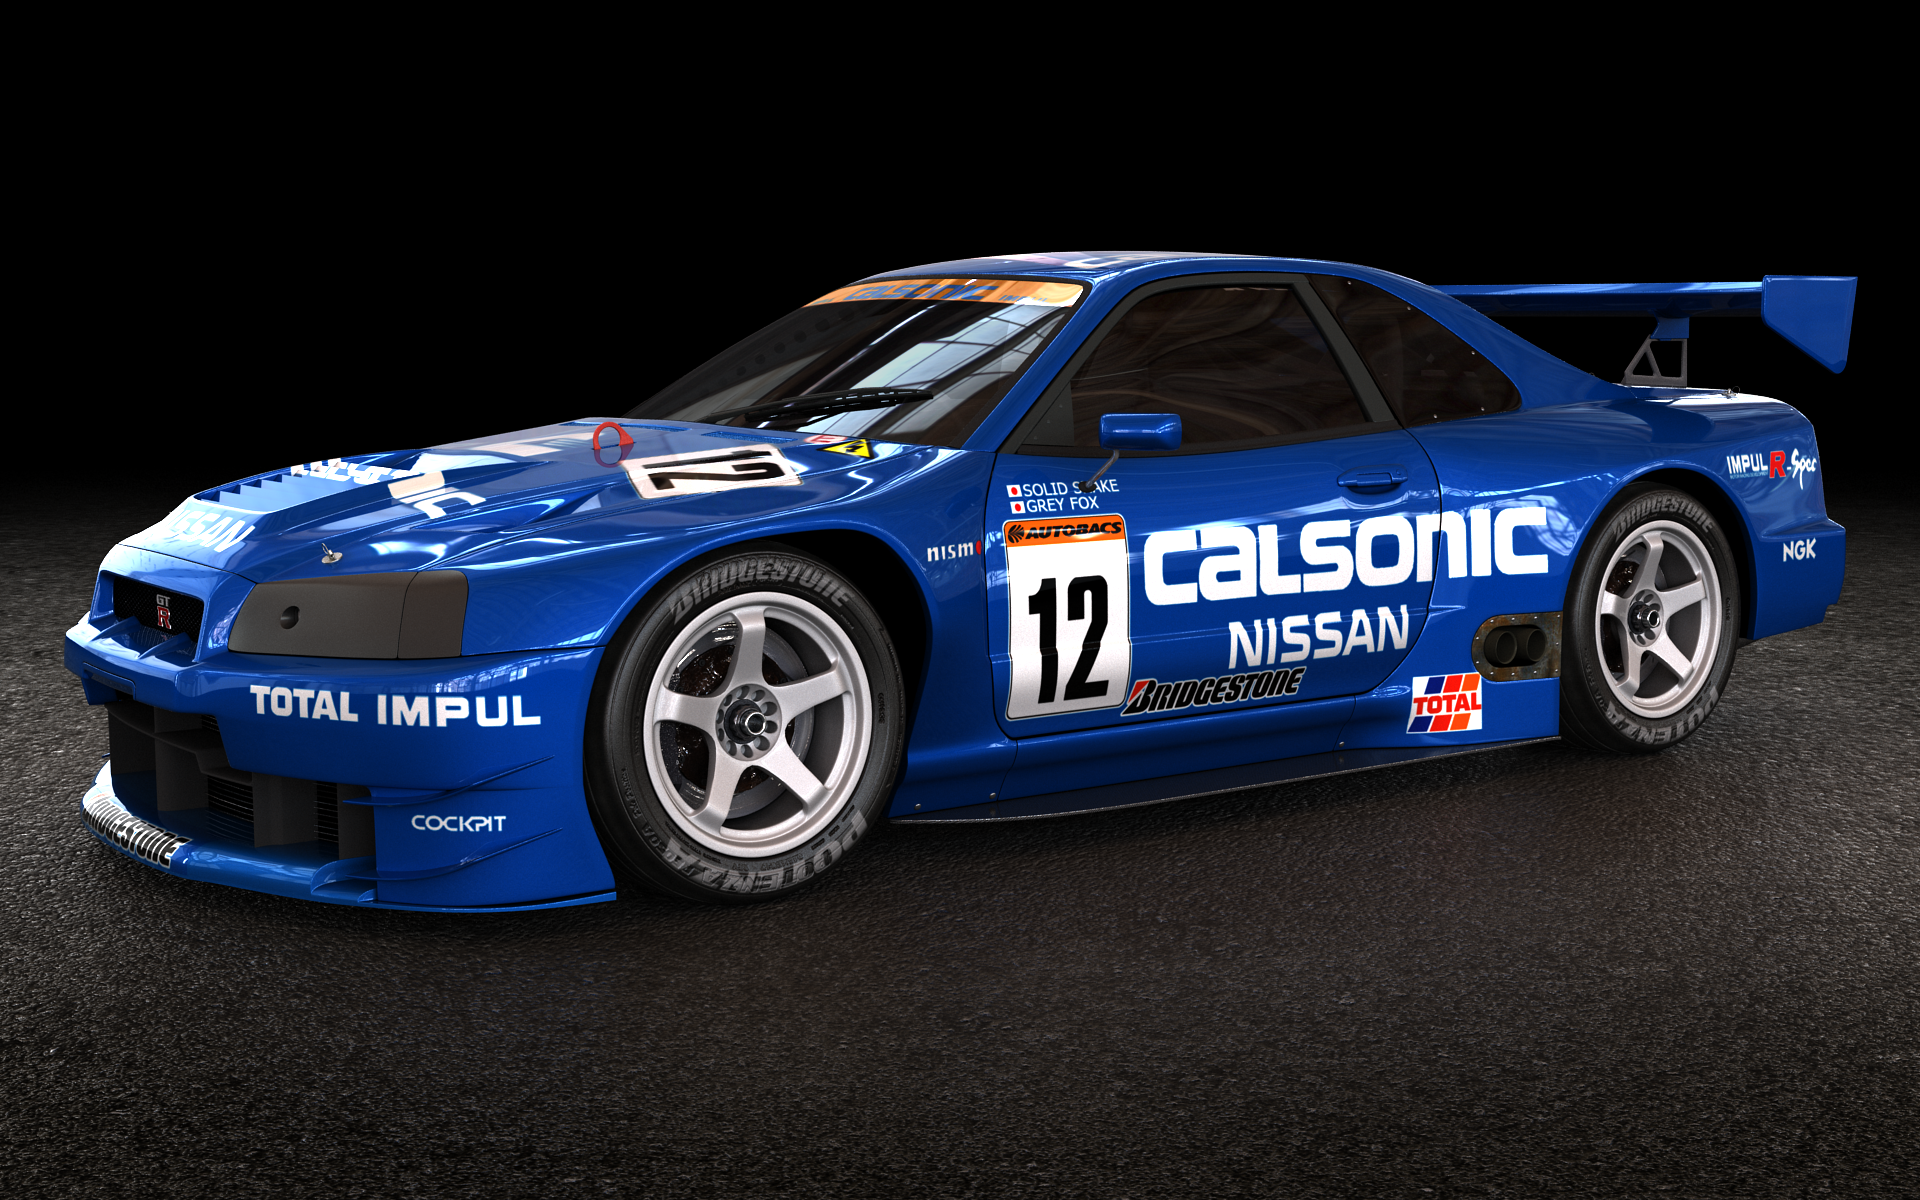 Nissan skyline gt r r34 jgtc calsonic view 1 by keshon83 on deviantart nissan skyline gt r r34 jgtc calsonic view 1 by keshon83 vanachro Gallery